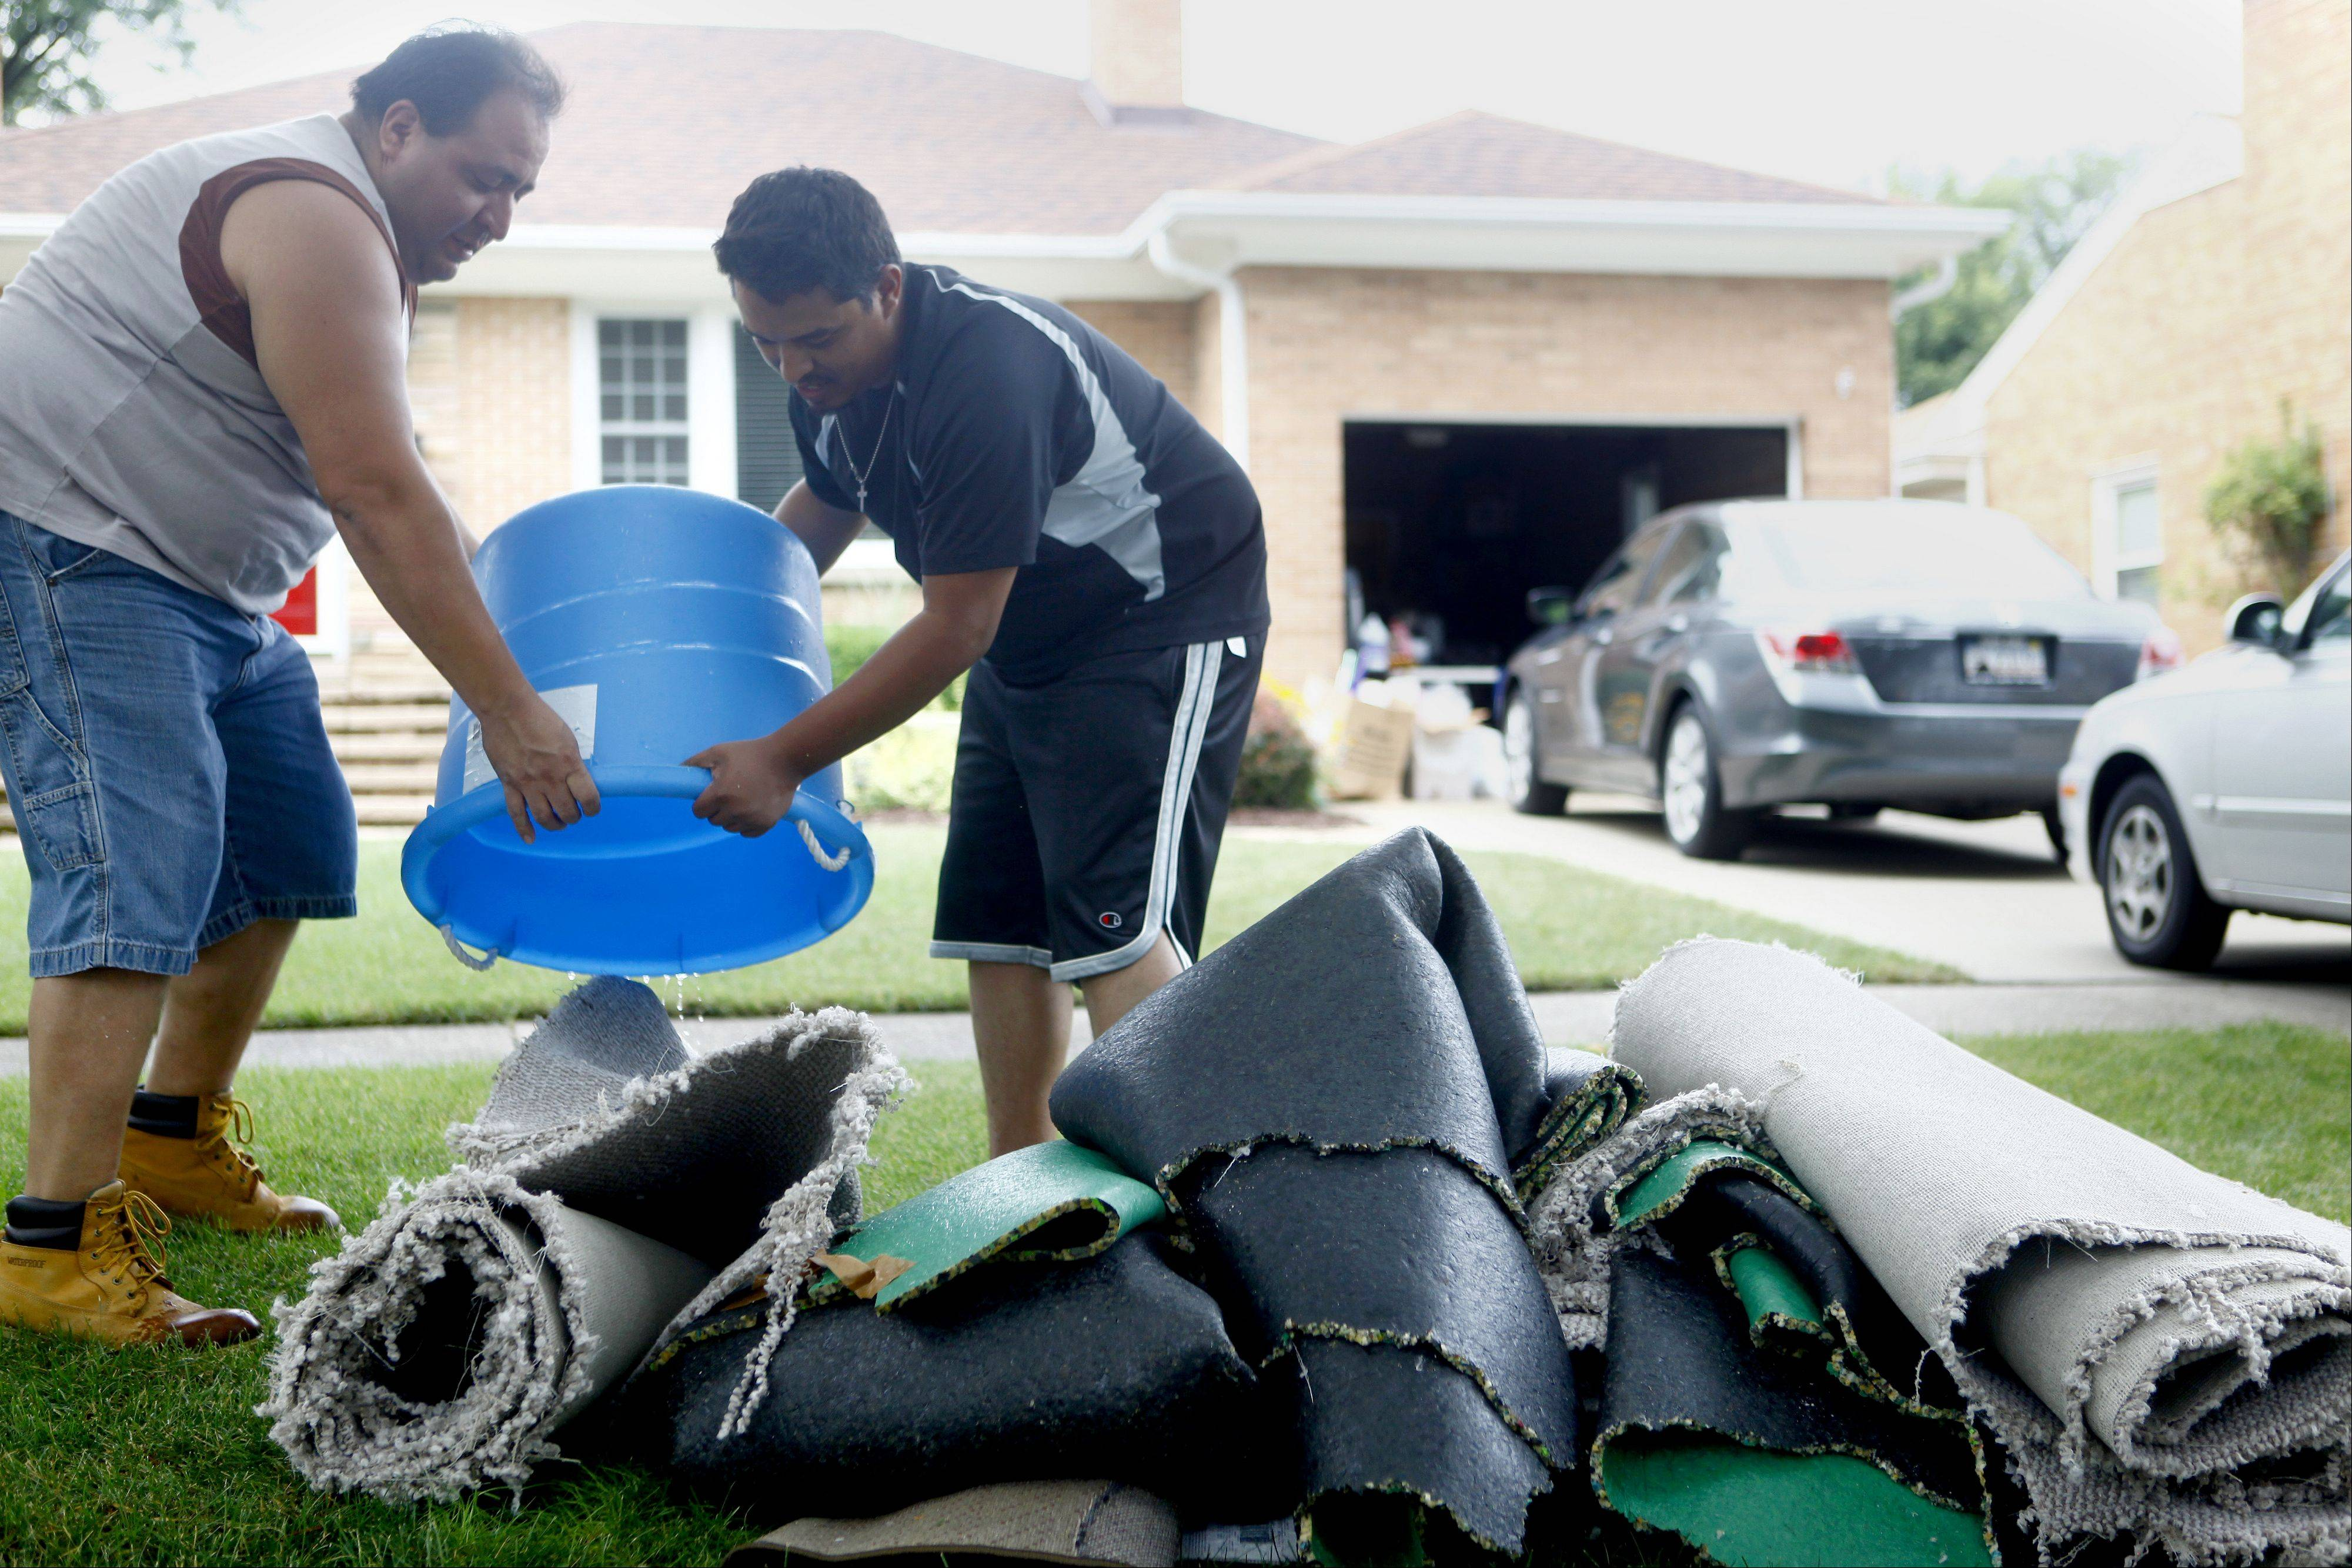 Mark Mesa, left, and Jorge Avina, carry out carpet from Mesa's brother's basement in Mount Prospect after heavy rains left six inches of water in the basement in 2011. Mount Prospect is considering a program to help homeowners prevent sewer backups.